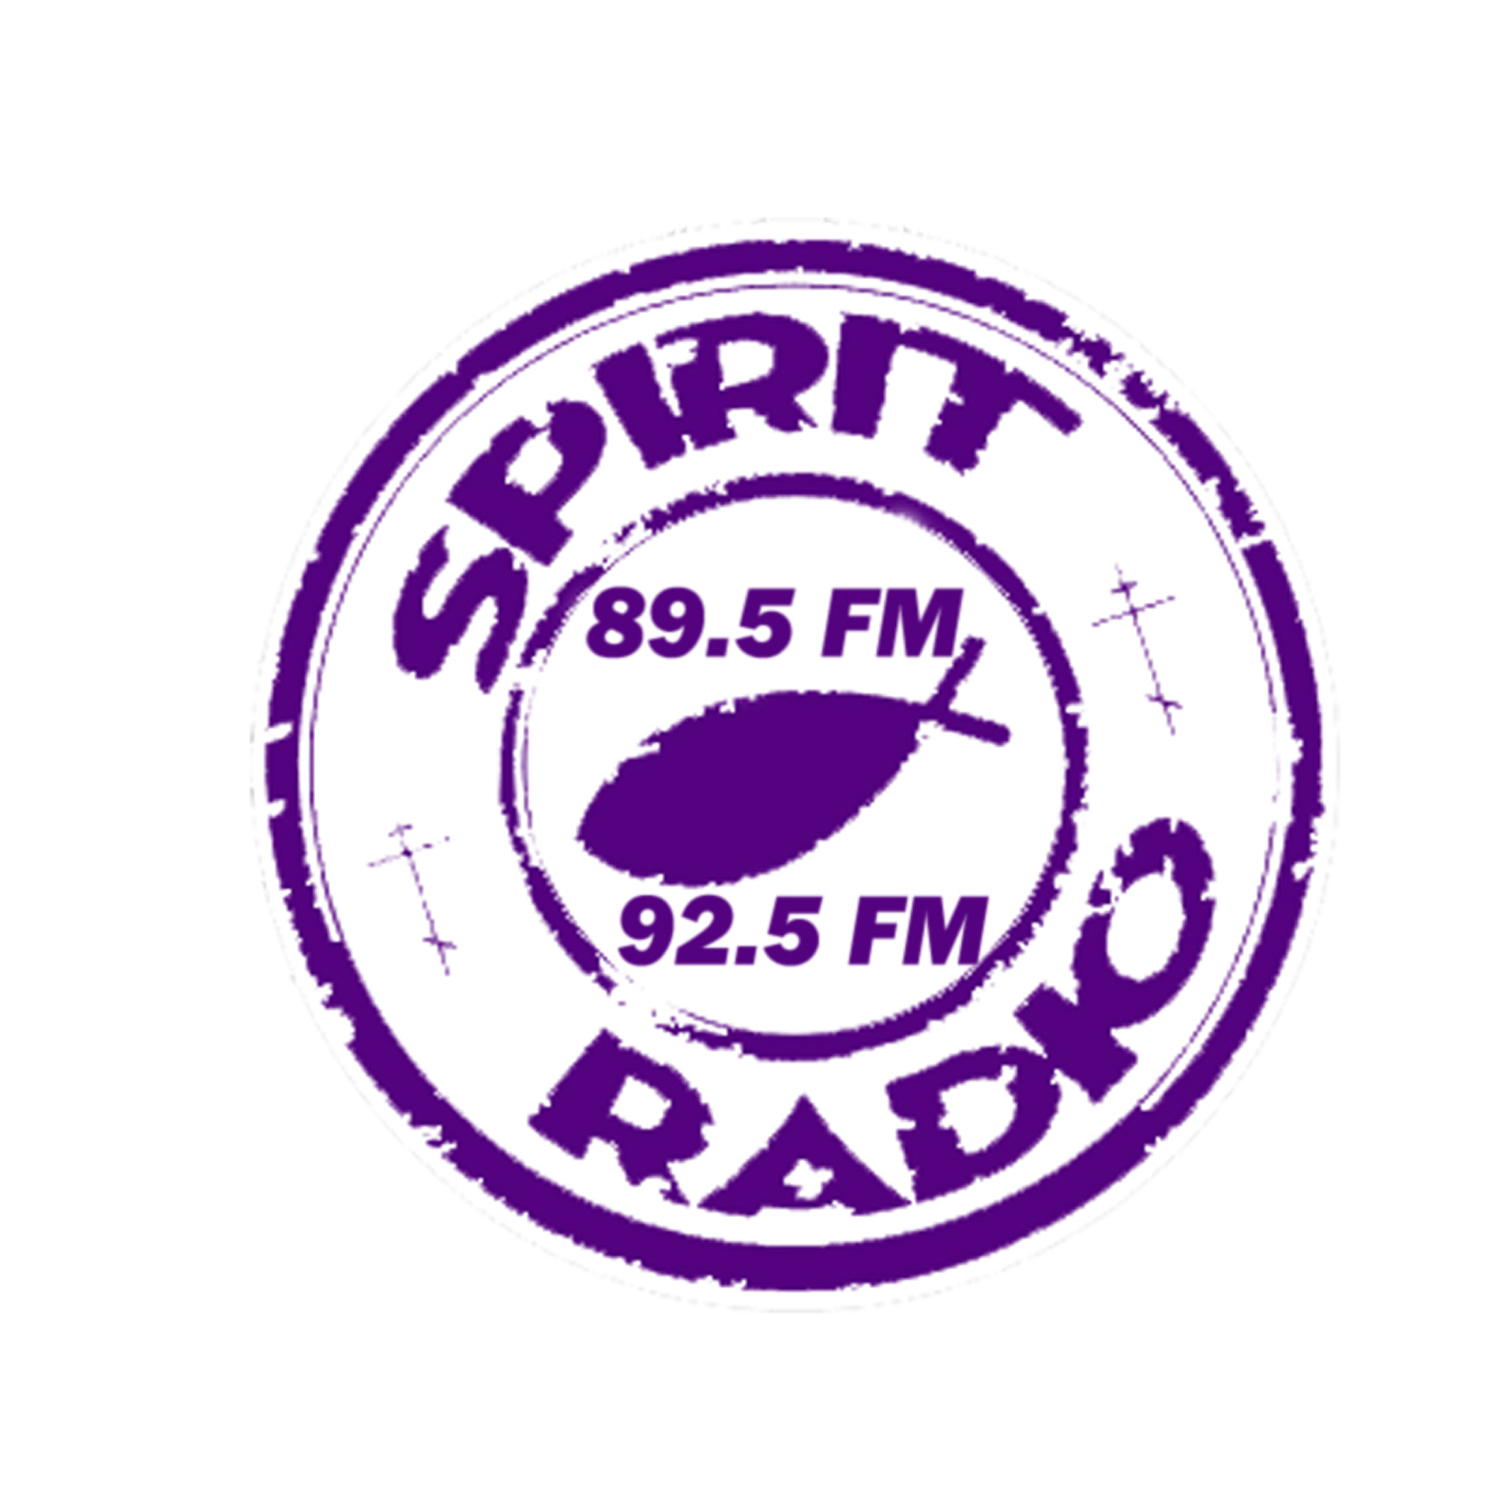 Catholic Spirit Radio 89.5 & 92.5